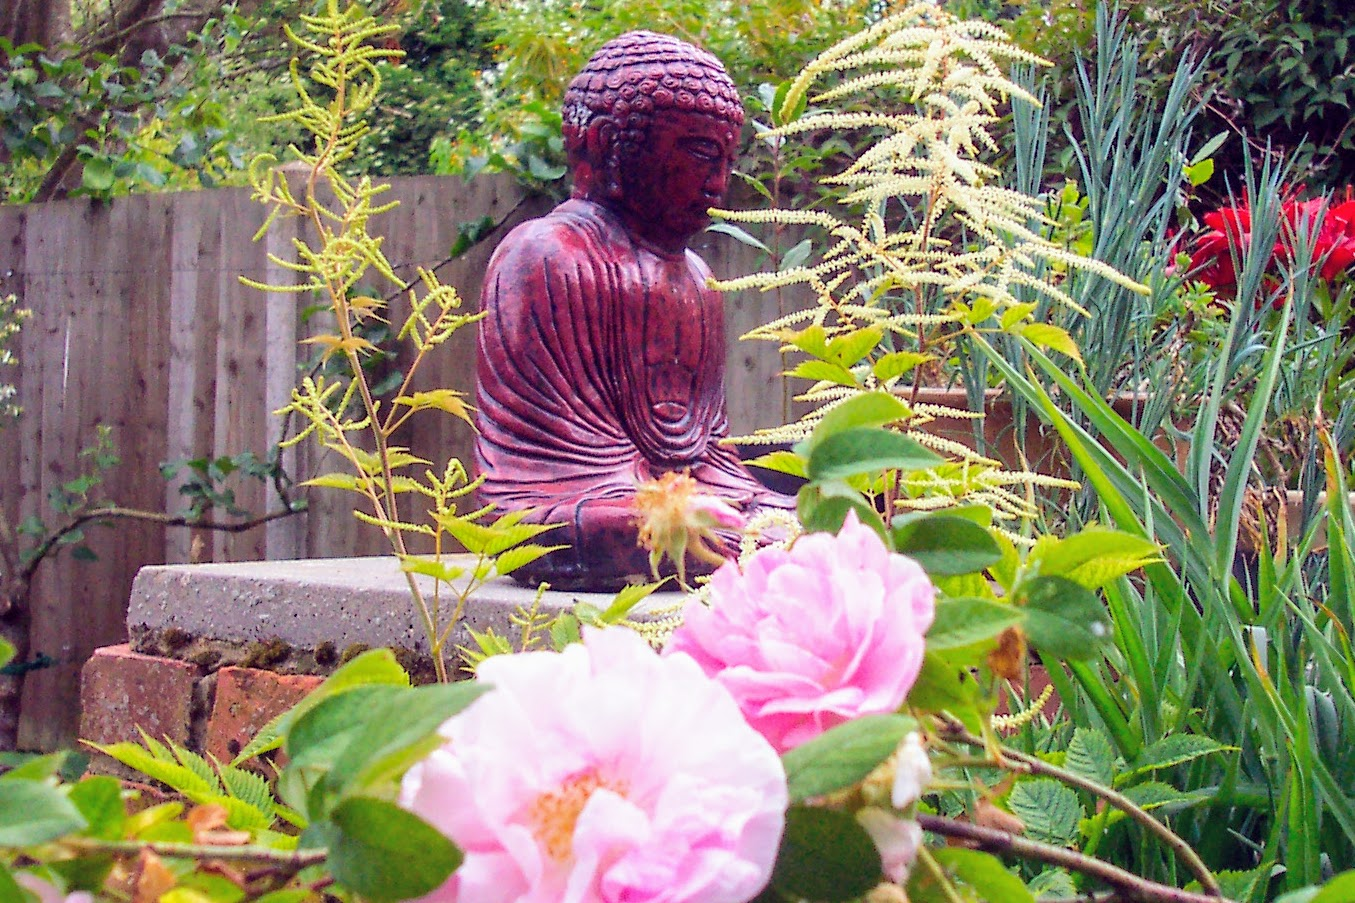 Buddha statue set amongst flowers in a garden